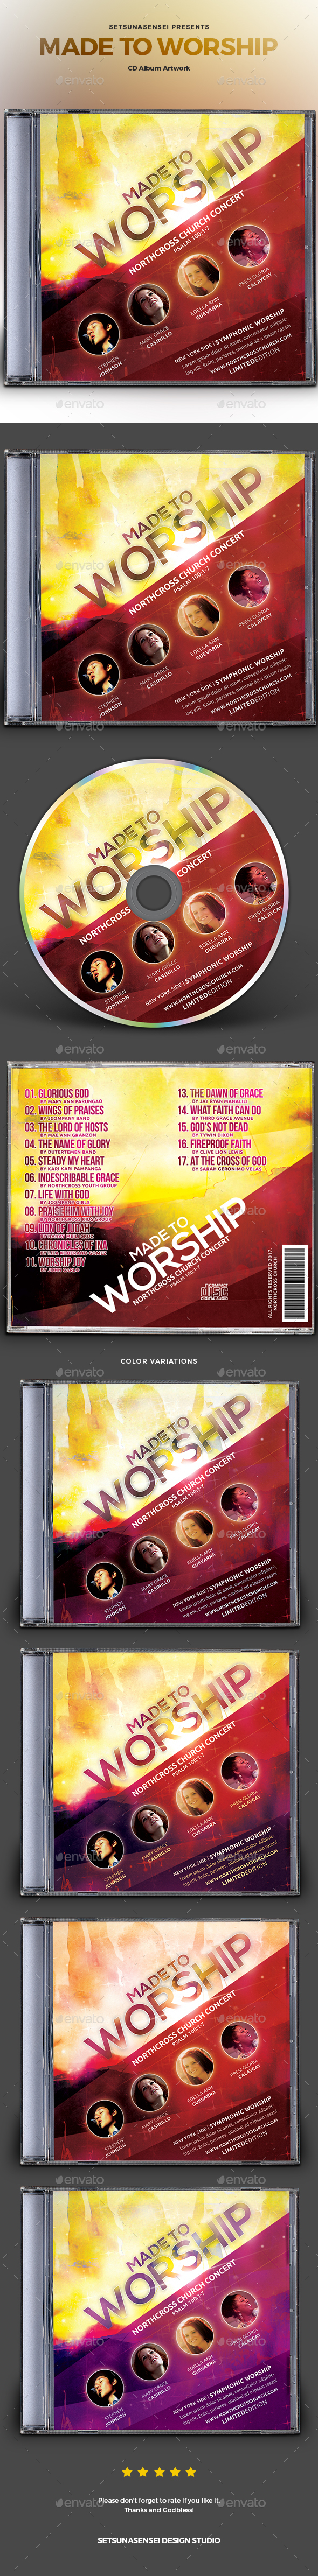 Made to Worship CD Album Artwork - CD & DVD Artwork Print Templates